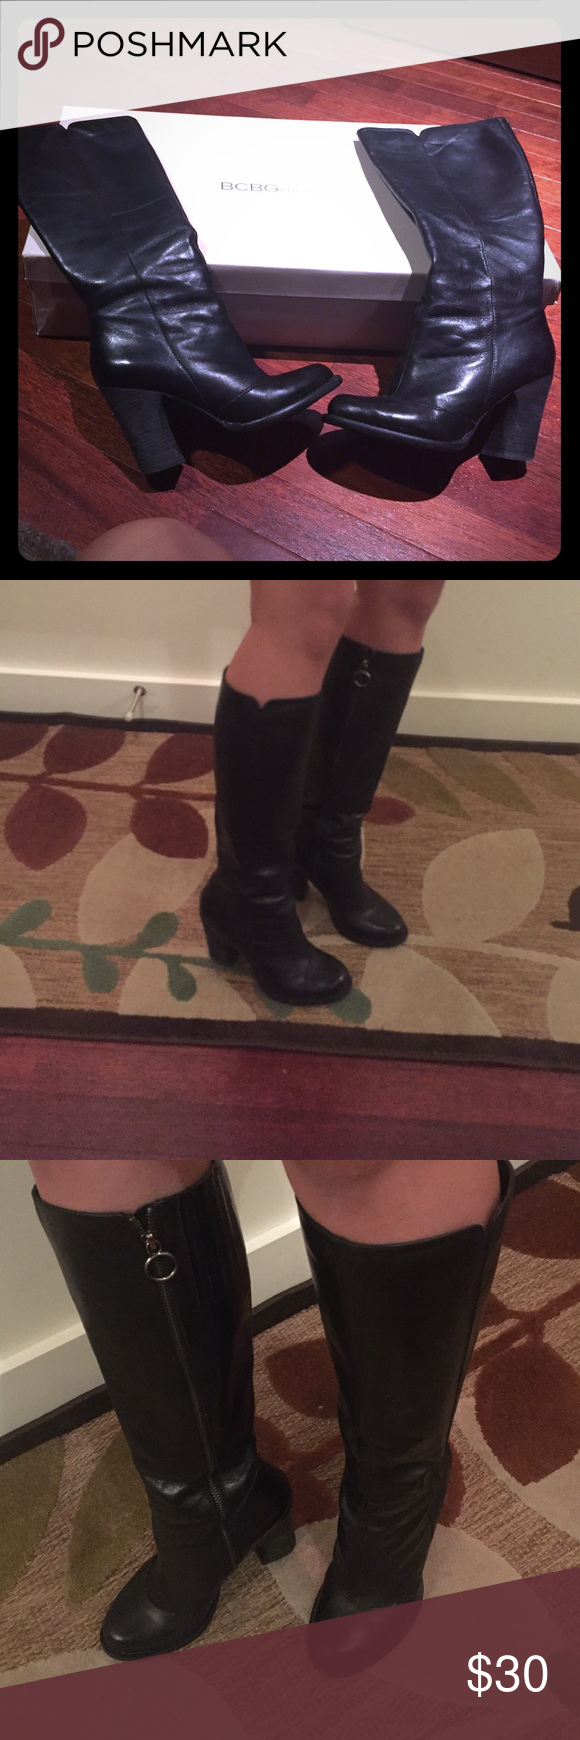 BCBGeneration Doris knee high boots Used, but still in fair condition. Original box included. Looks like it is still being sold on Amazon:  https://www.amazon.com/BCBGeneration-Womens-Doris-Knee-High/dp/B002DW93OM BCBGeneration Shoes Heeled Boots